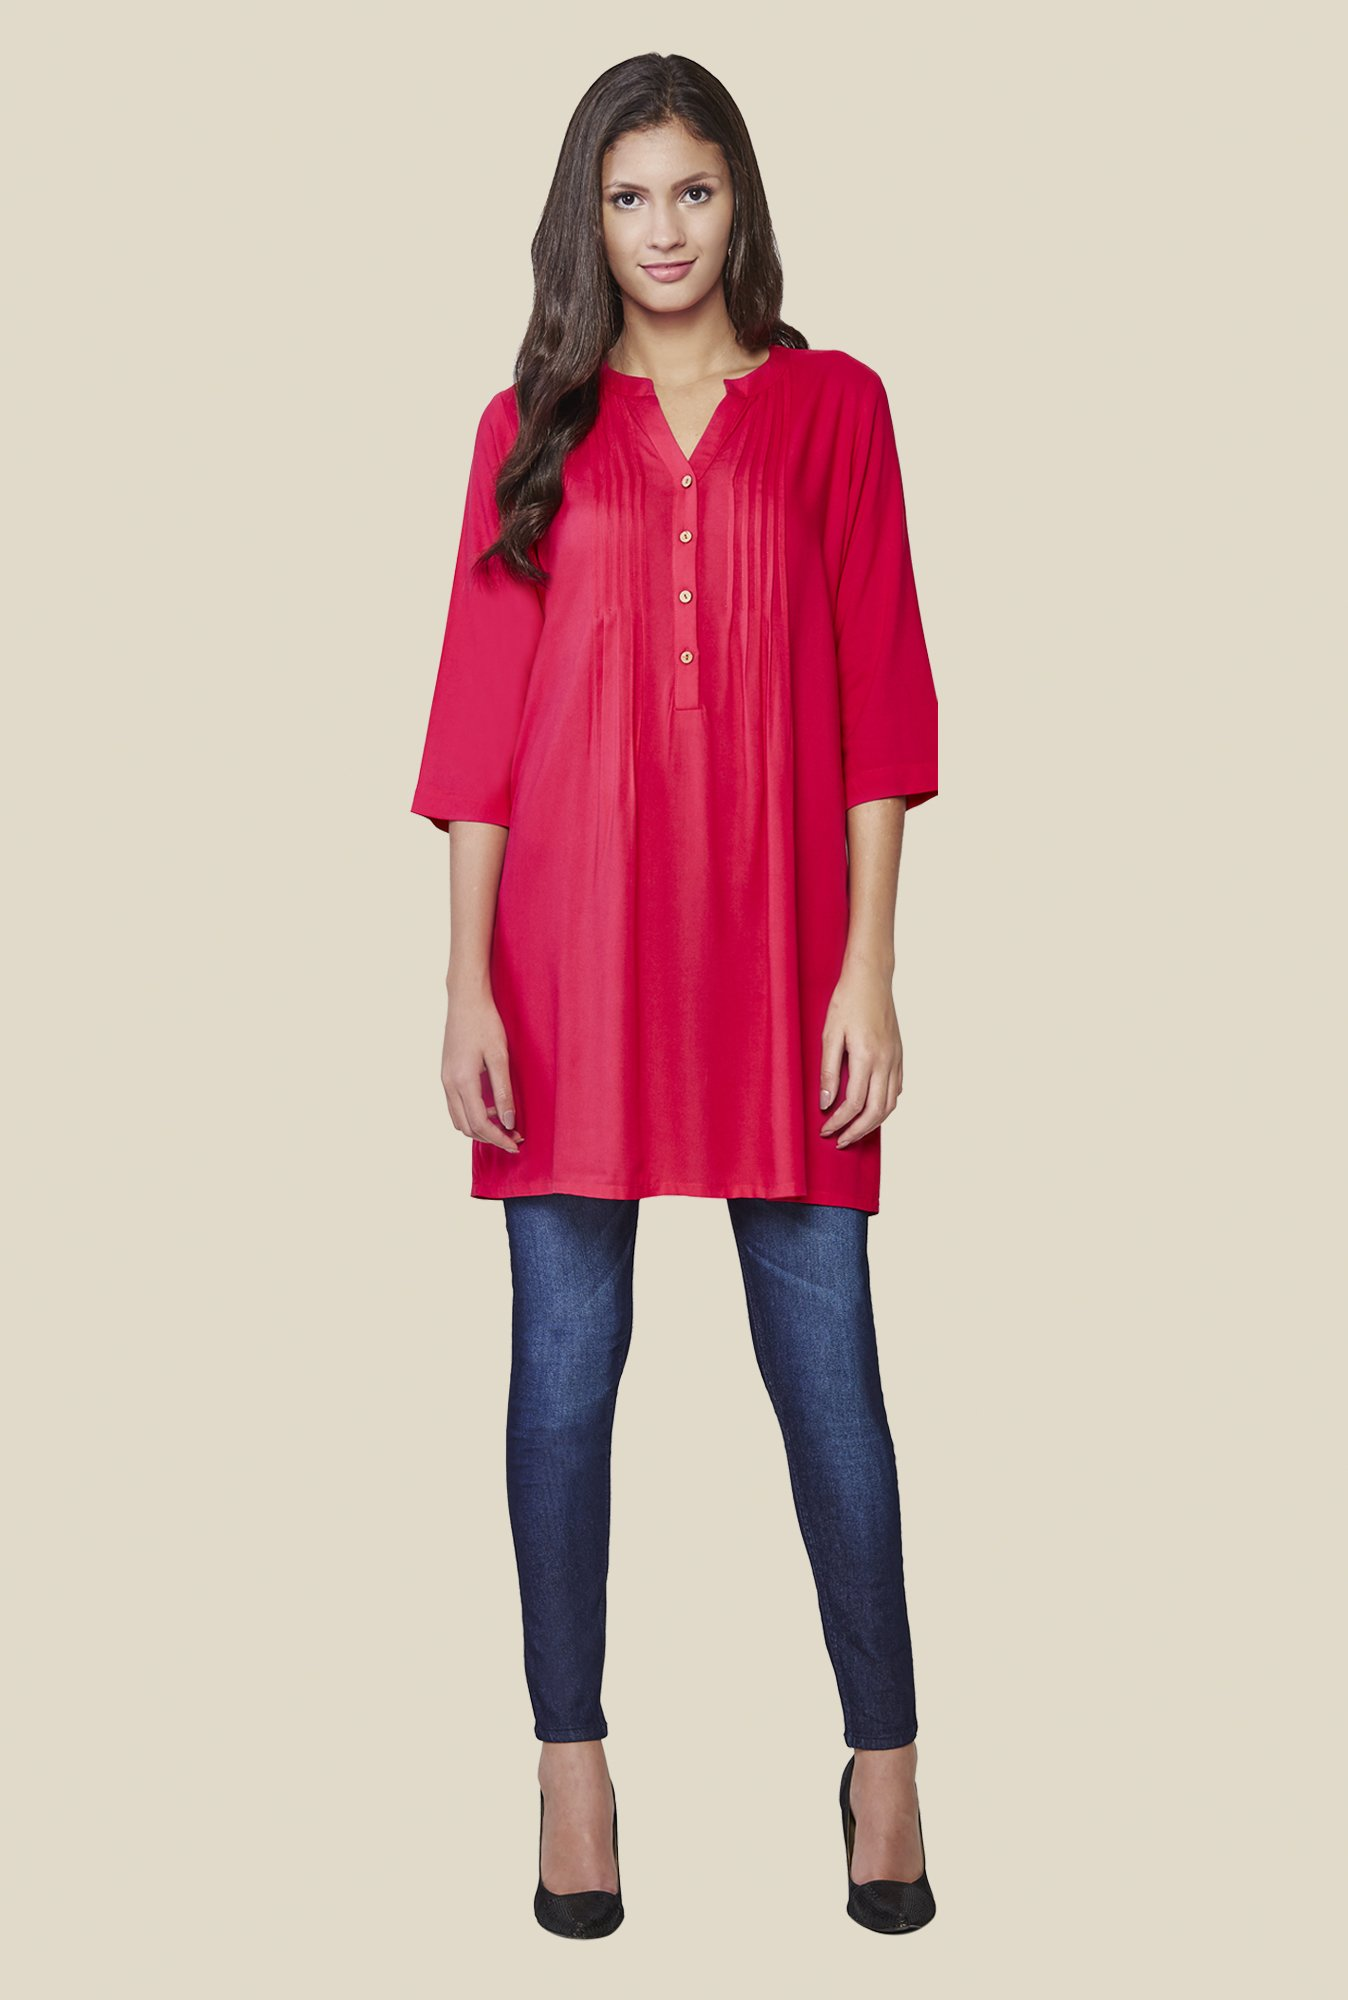 AND Pink Solid Tunic